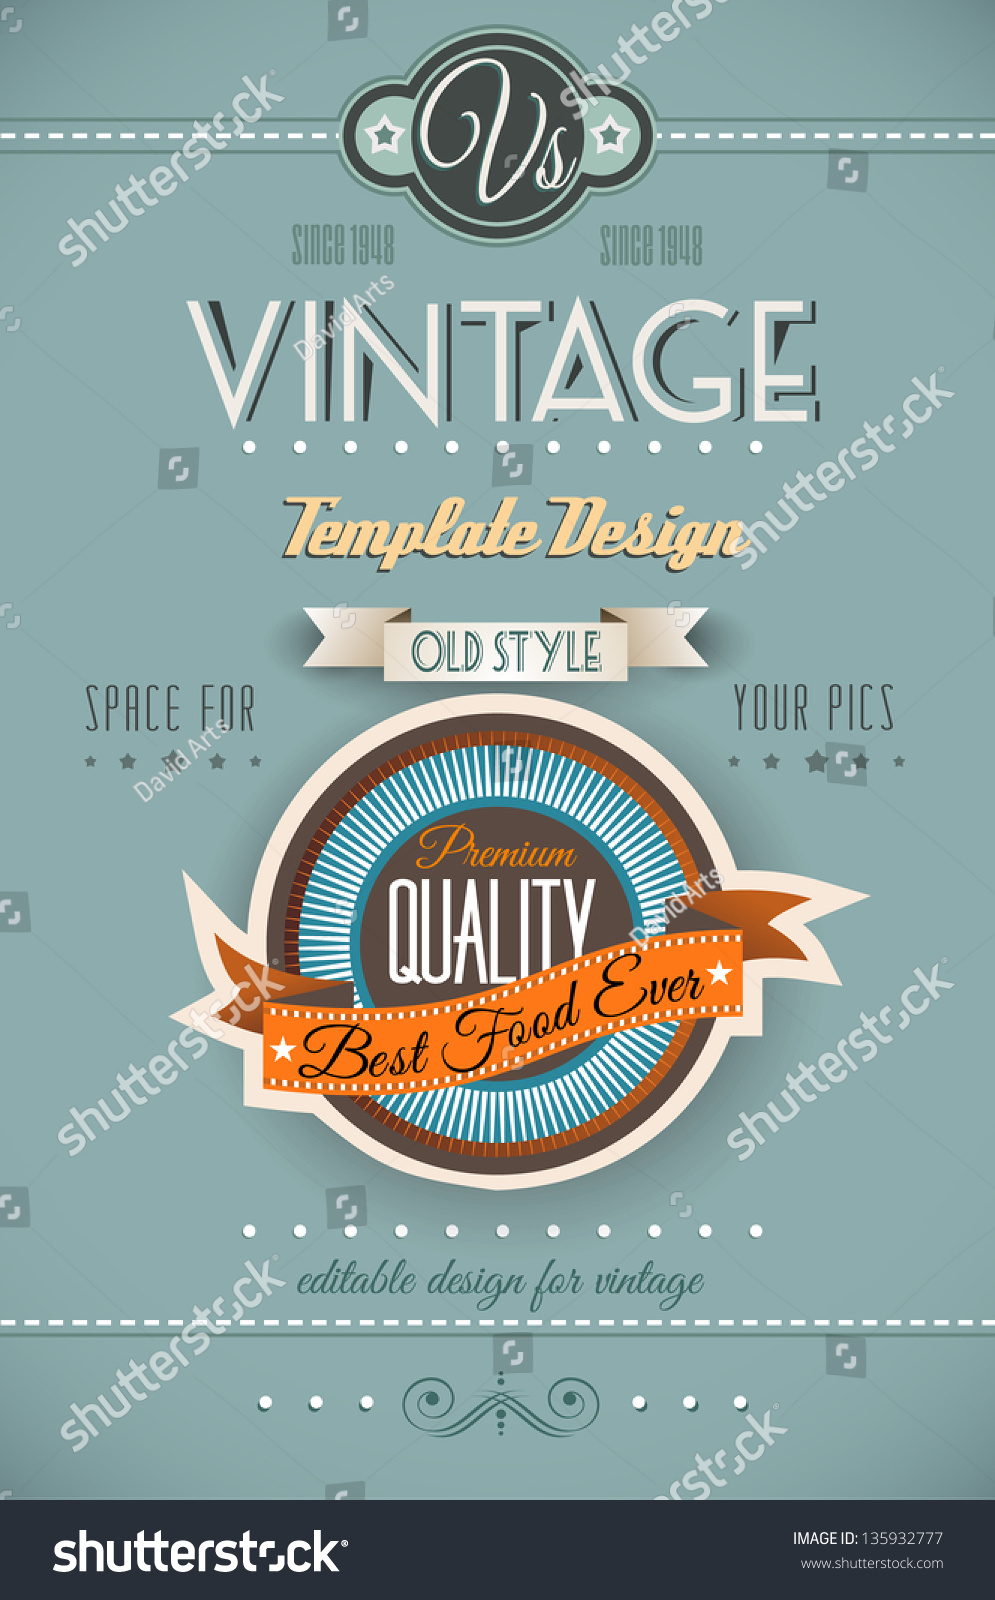 Vintage Style Book Cover : Vintage retro page template variety purposes stock